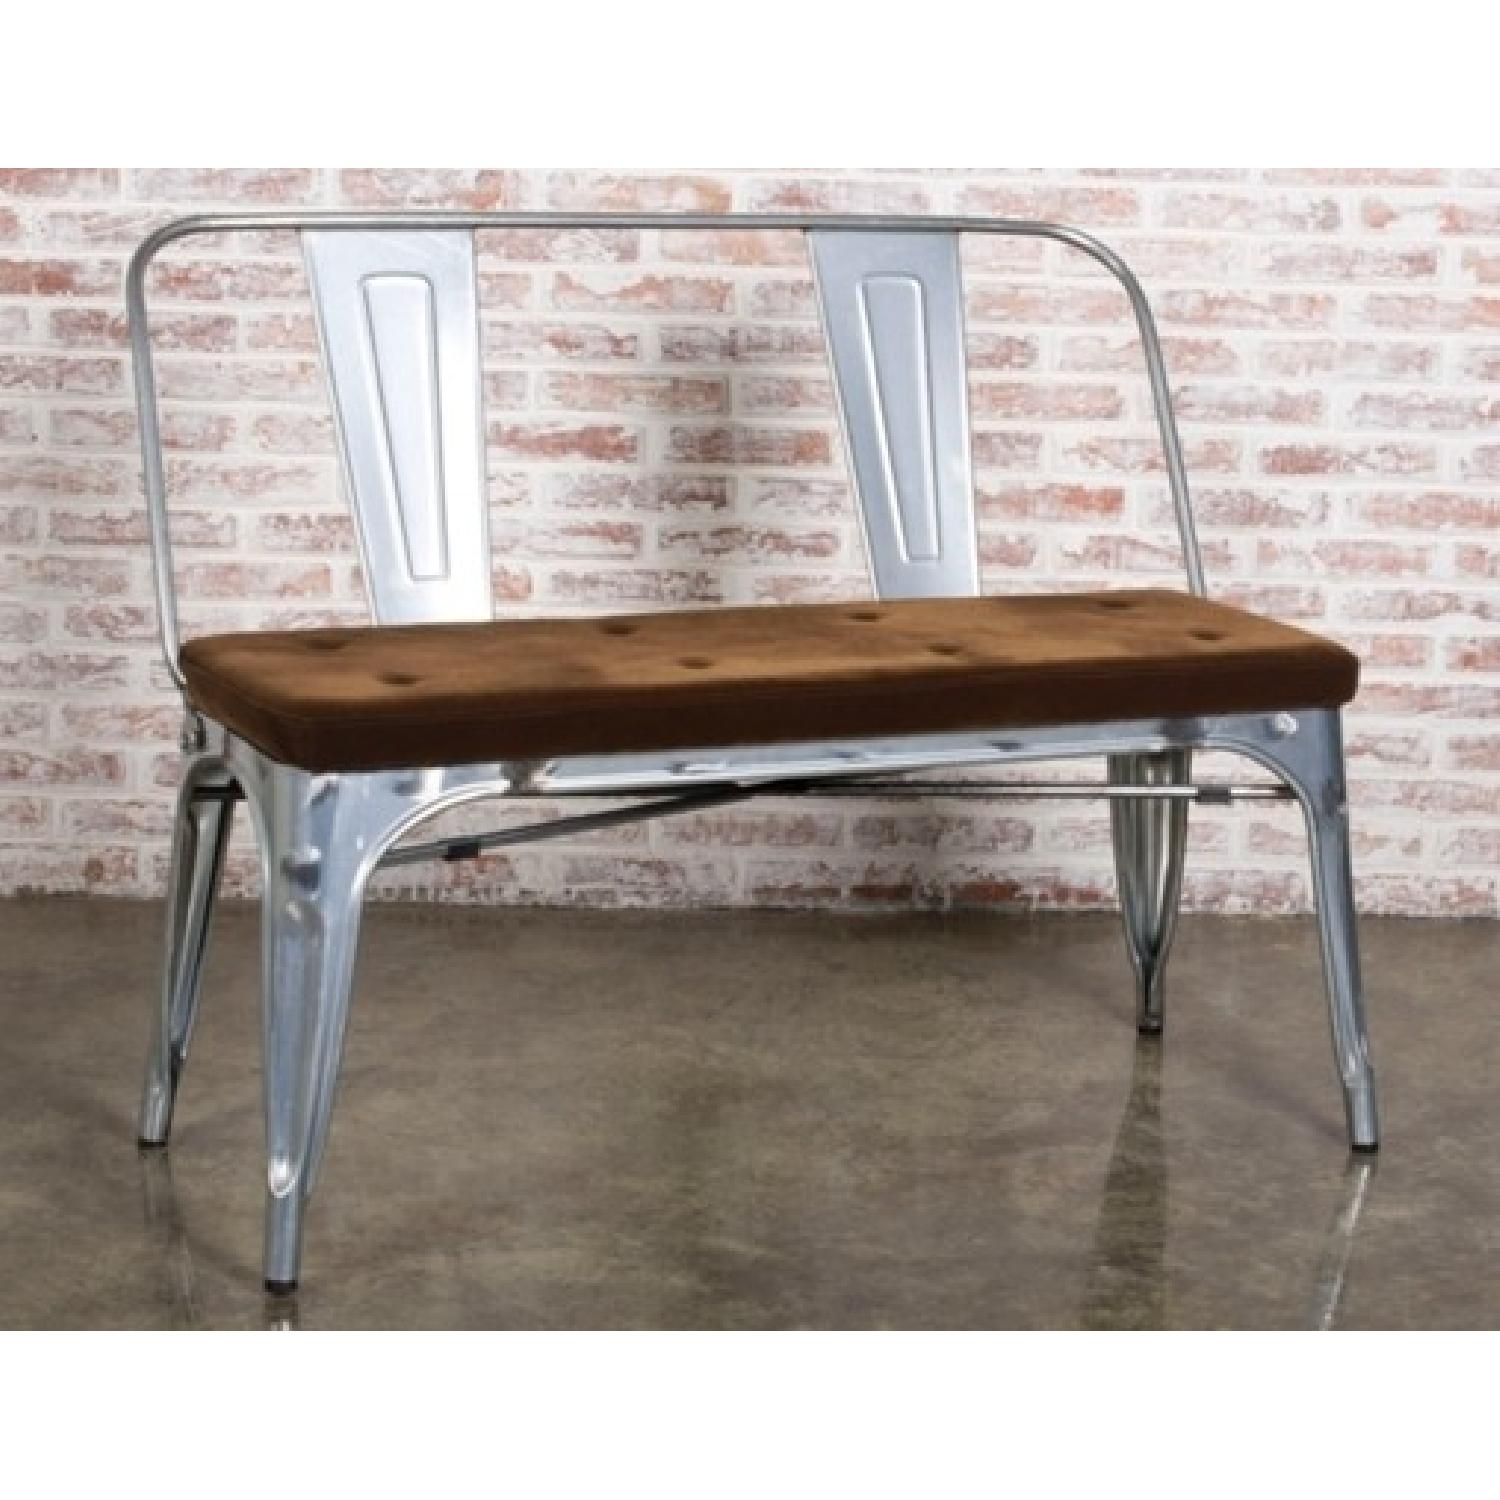 Double Seat Bench In Galvanized Metal Frame w/ Brown Fabric Cushion - image-4